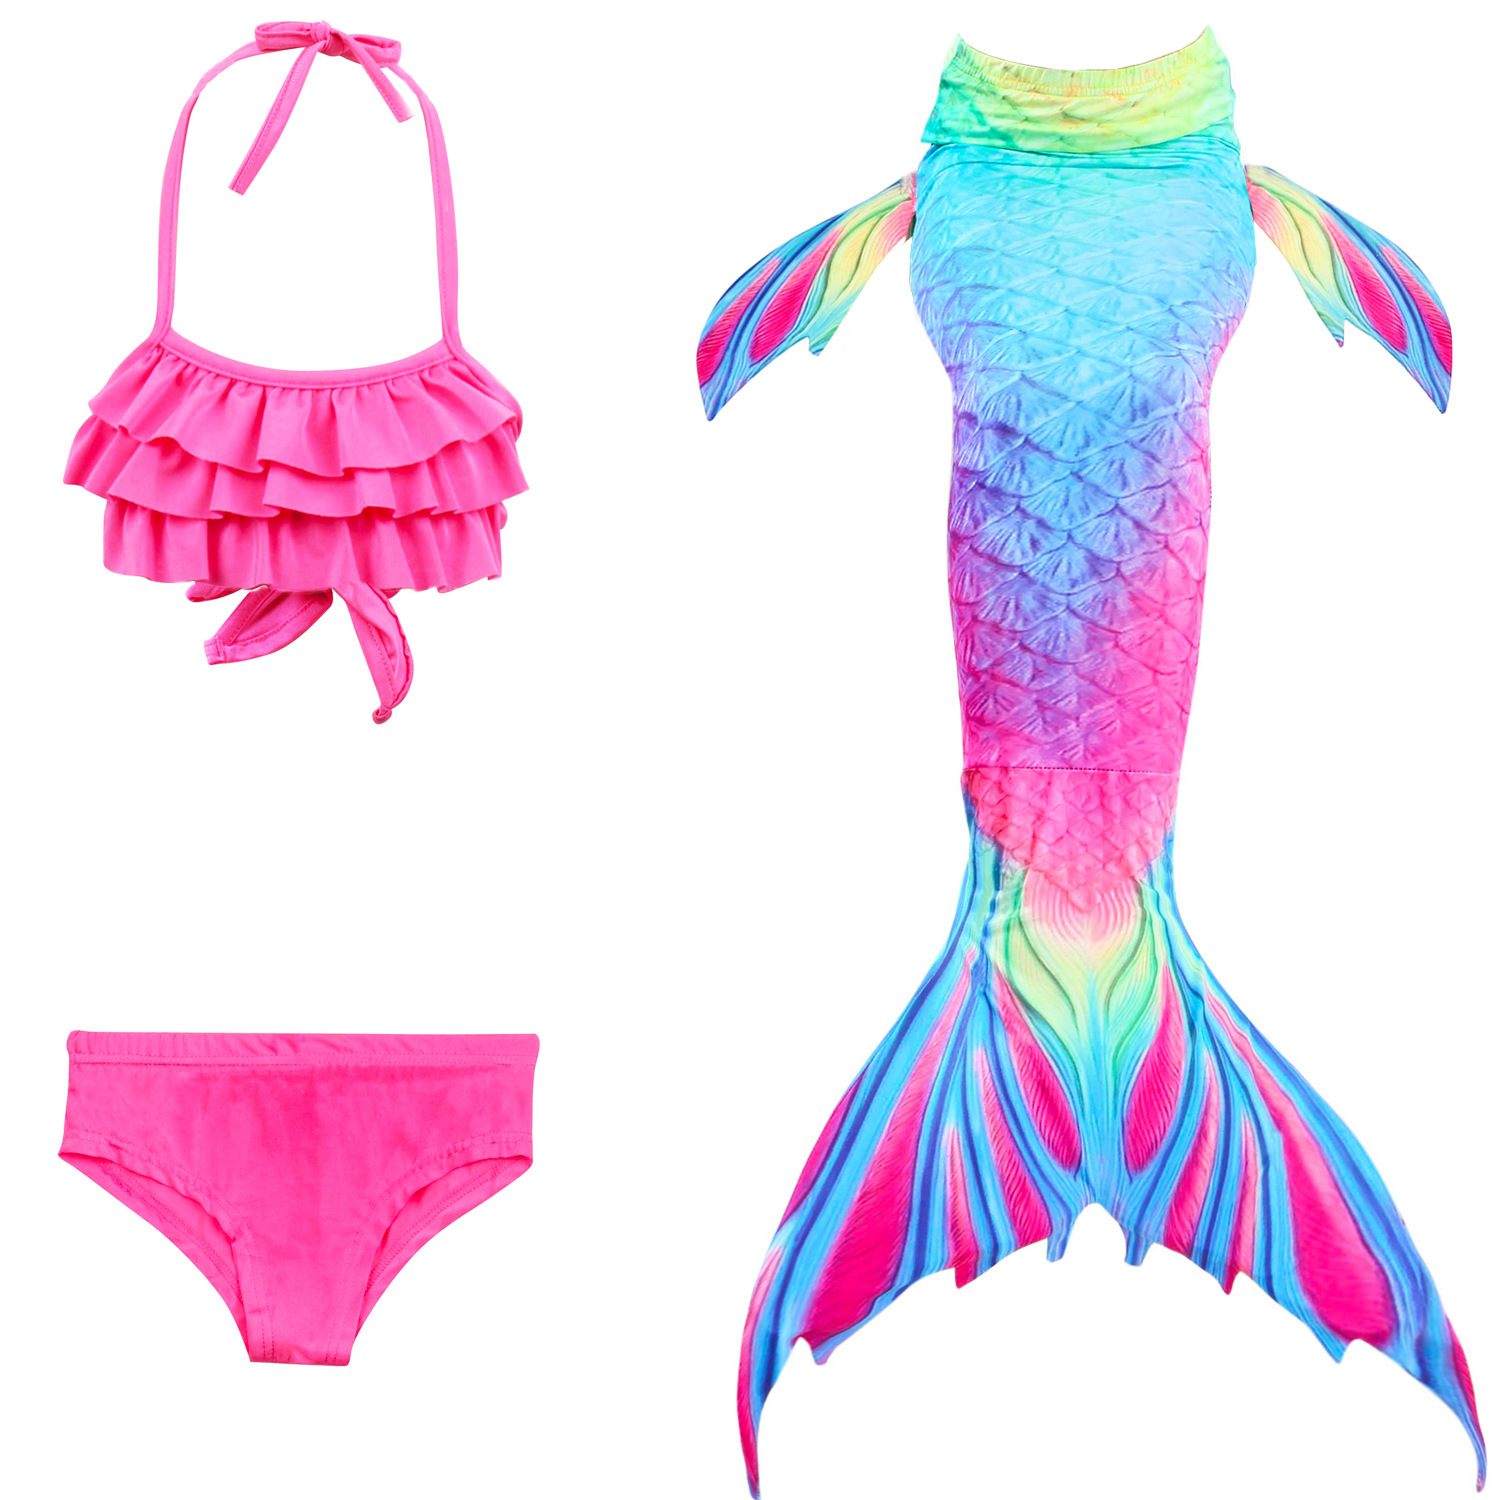 9212166231 898390851 - 4PCS/Set HOT Kids Girls Mermaid Tails with Fin Swimsuit Bikini Bathing Suit Dress for Girls With Flipper Monofin For Swim